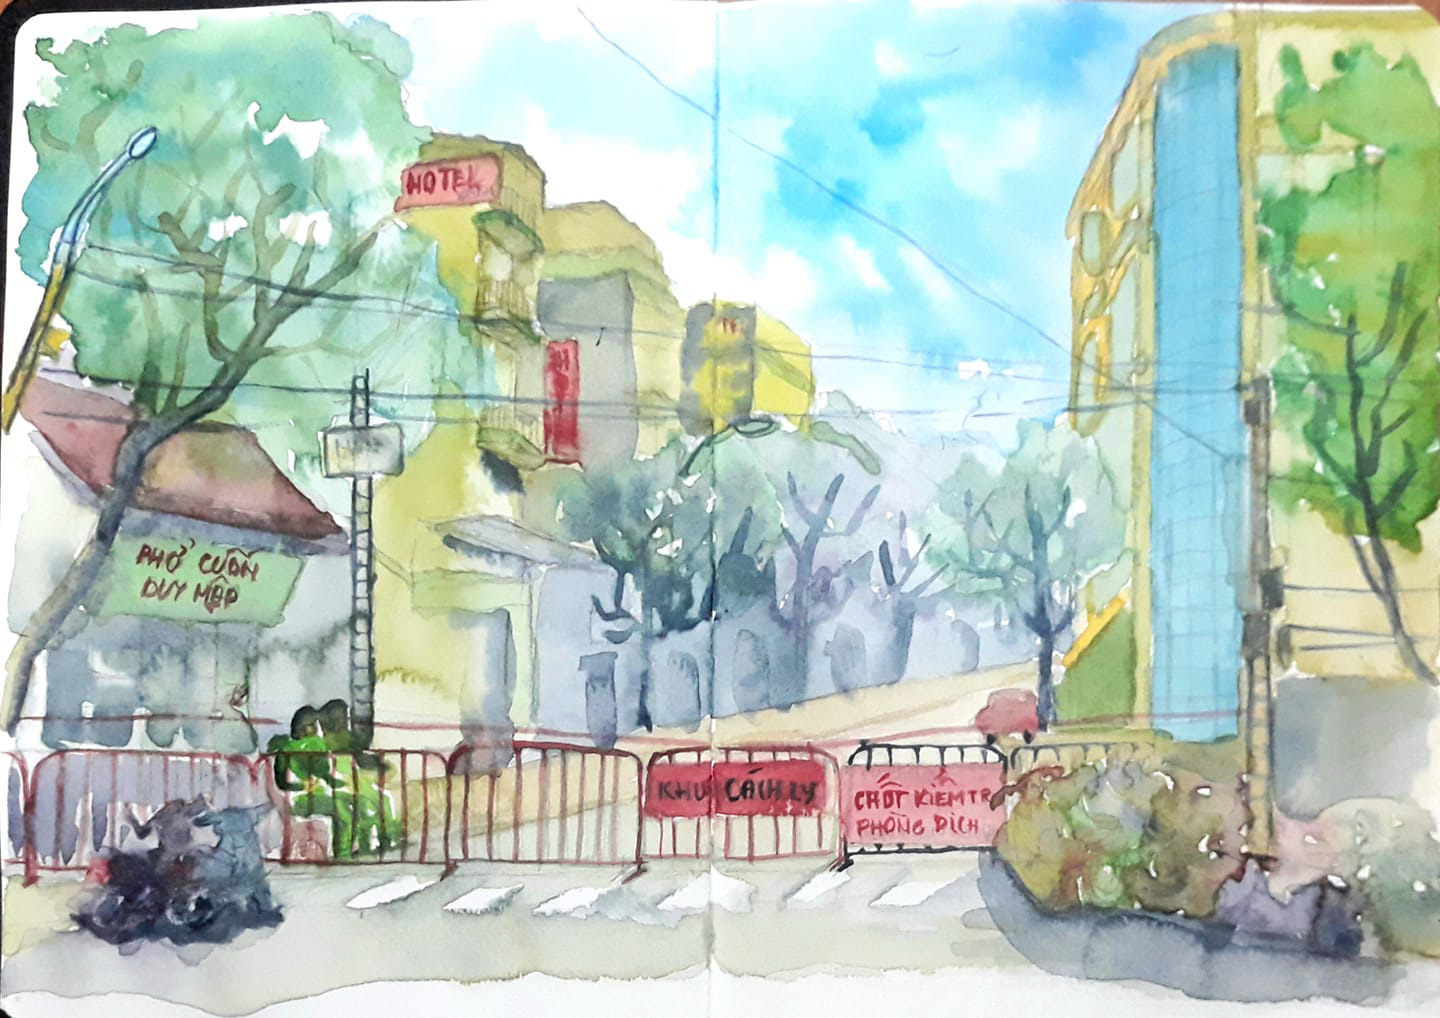 Artist Dang Truong Giang chooses to submit a sketch of his quarantined neighborhood on Truc Bach Street in Hanoi.